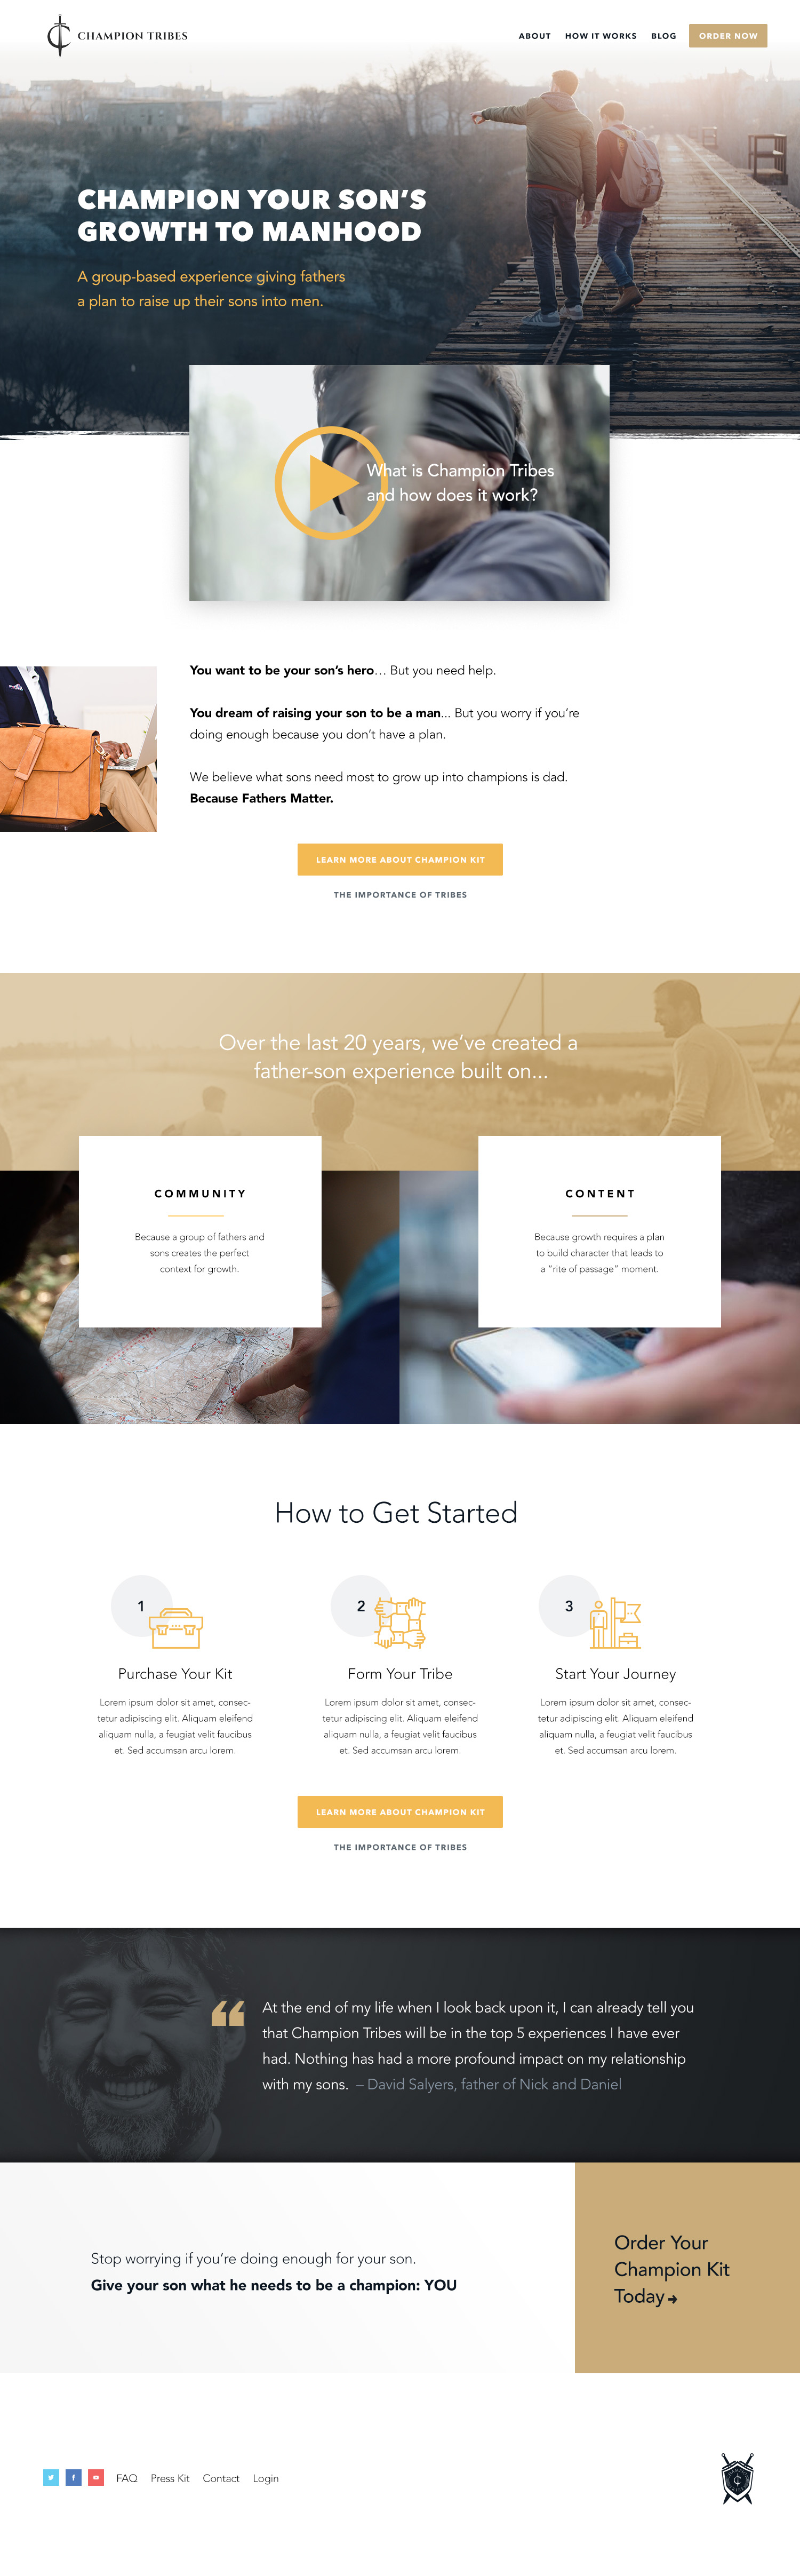 Ct home v2 | Design | Pinterest | Web design inspiration, Ui ux and ...